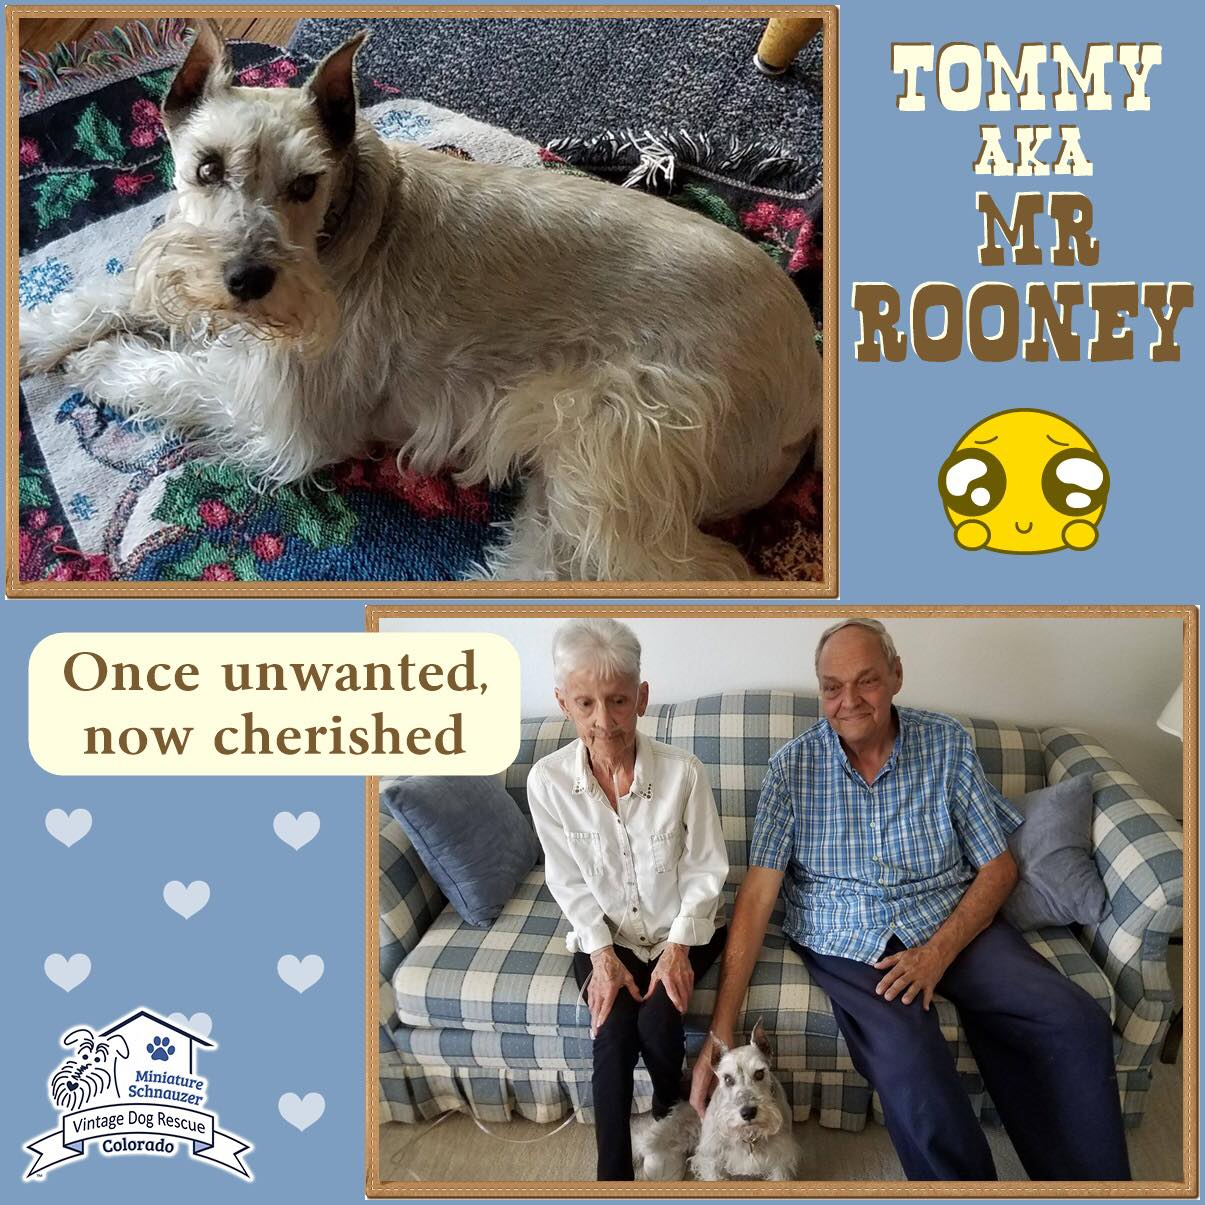 Mr. Rooney was adopted!